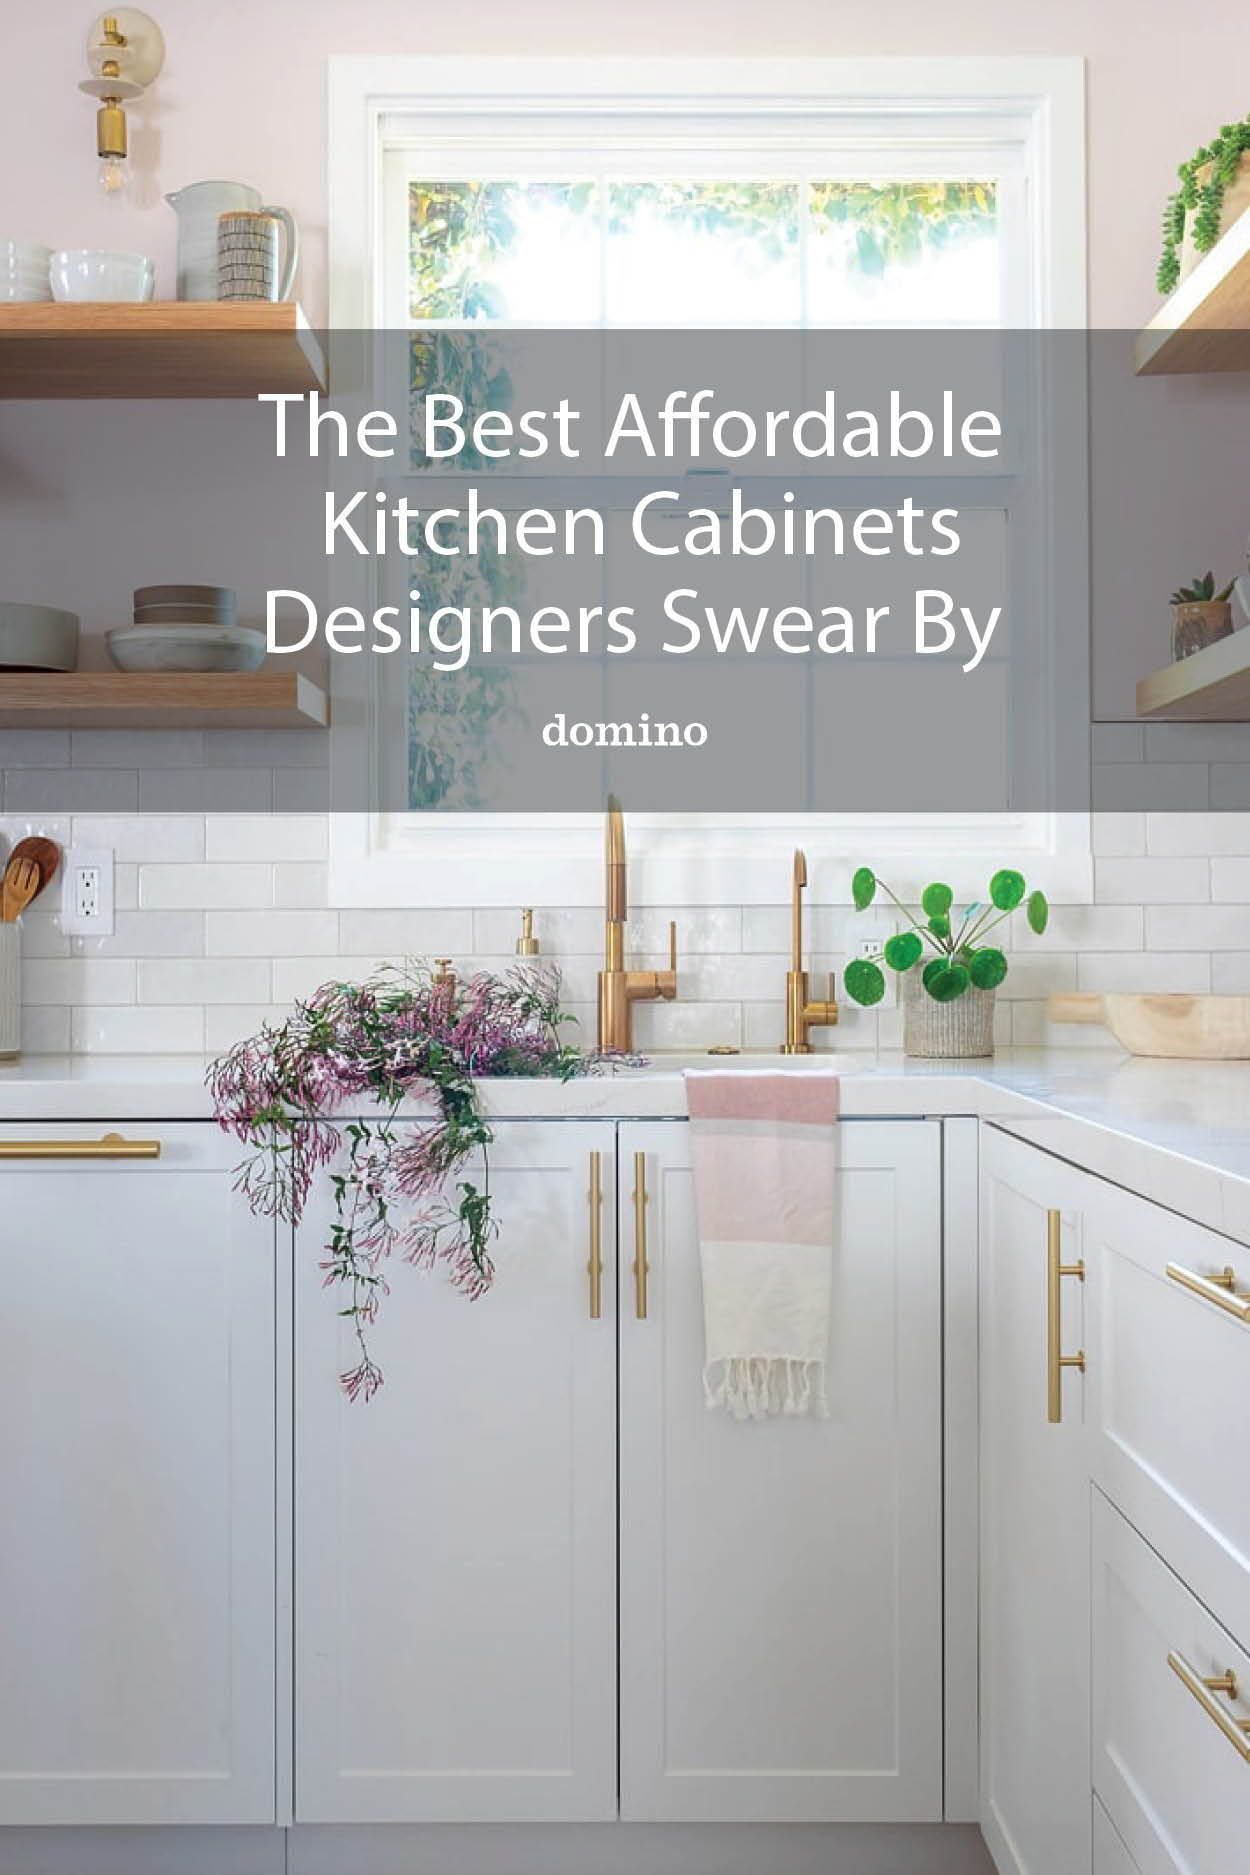 The Best Inexpensive Kitchen Cabinets Designers Swear By Inexpensive Kitchen Cabinets Affordable Kitchen Cabinets Online Kitchen Cabinets Best inexpensive kitchen cabinets